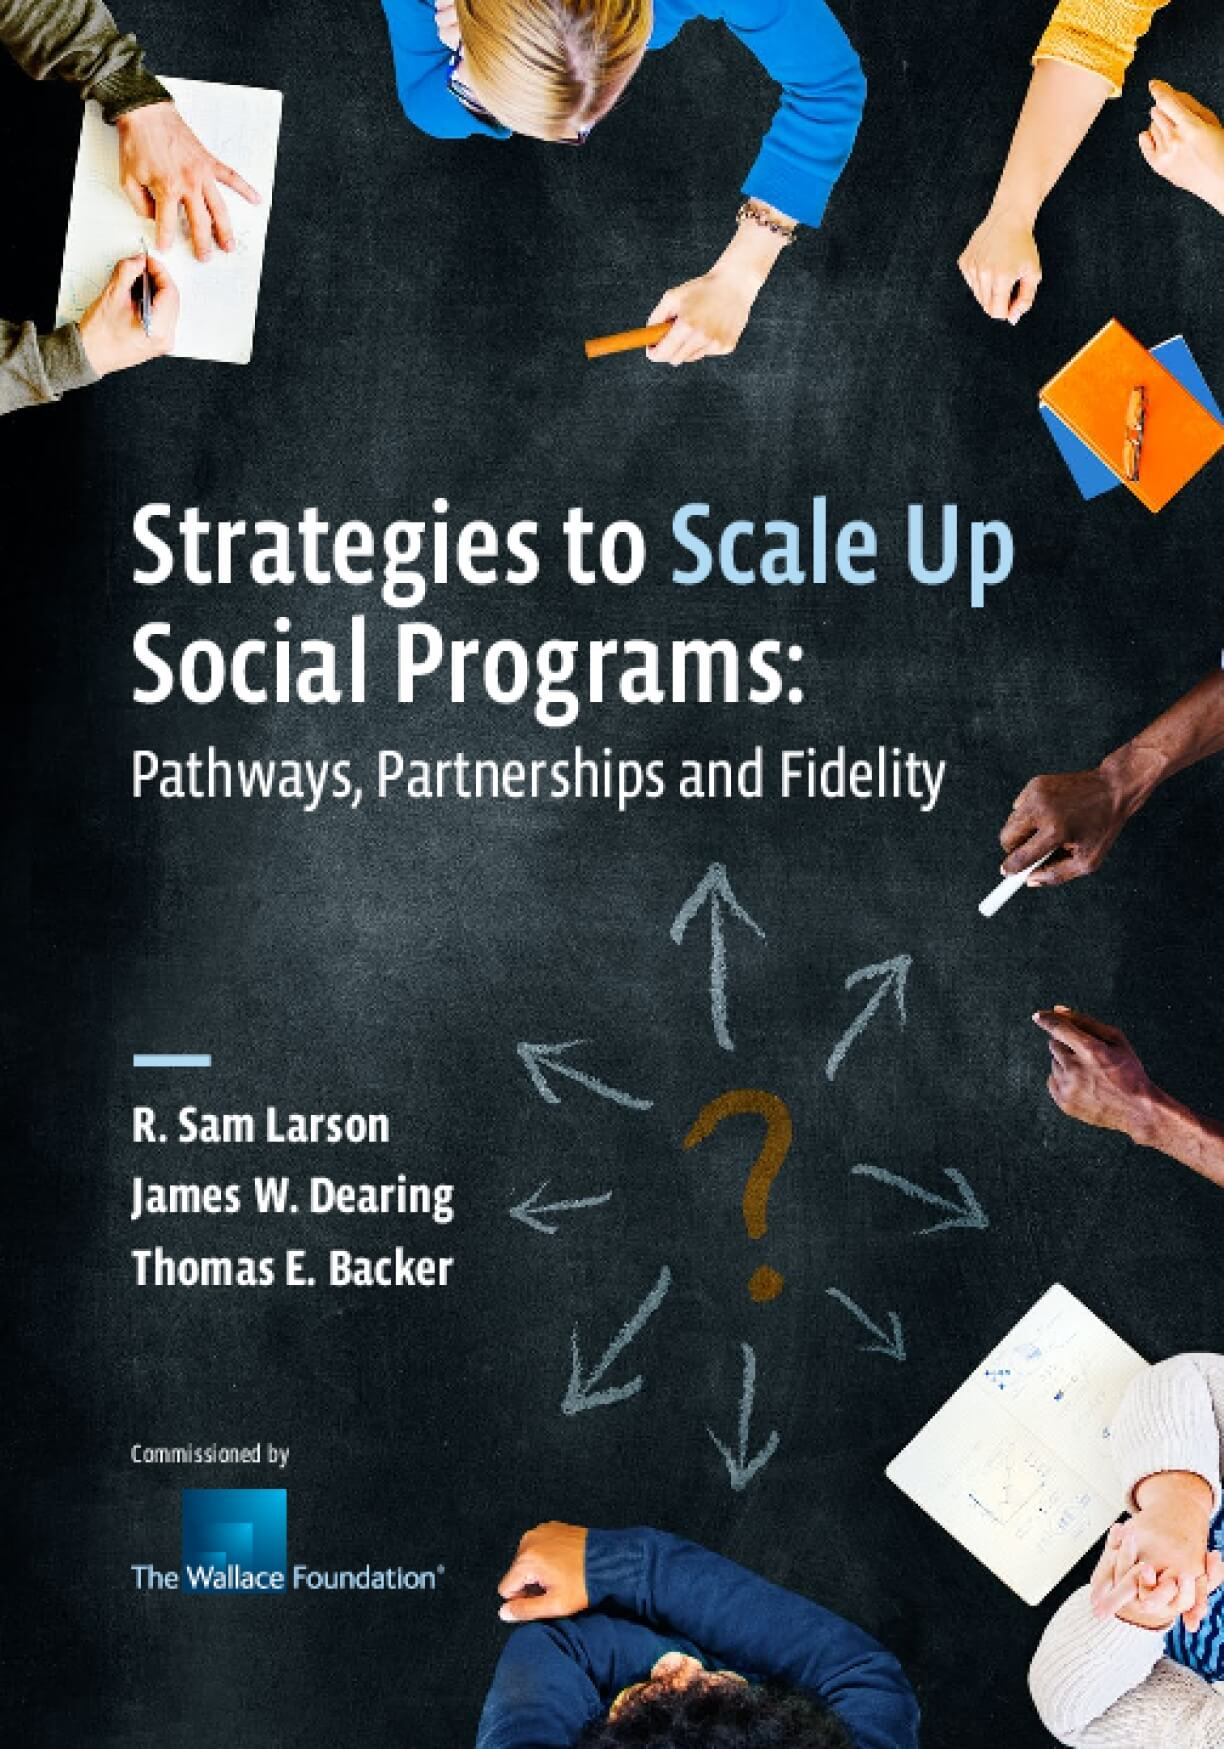 Strategies to Scale Up Social Programs: Pathways, Partnerships and Fidelity